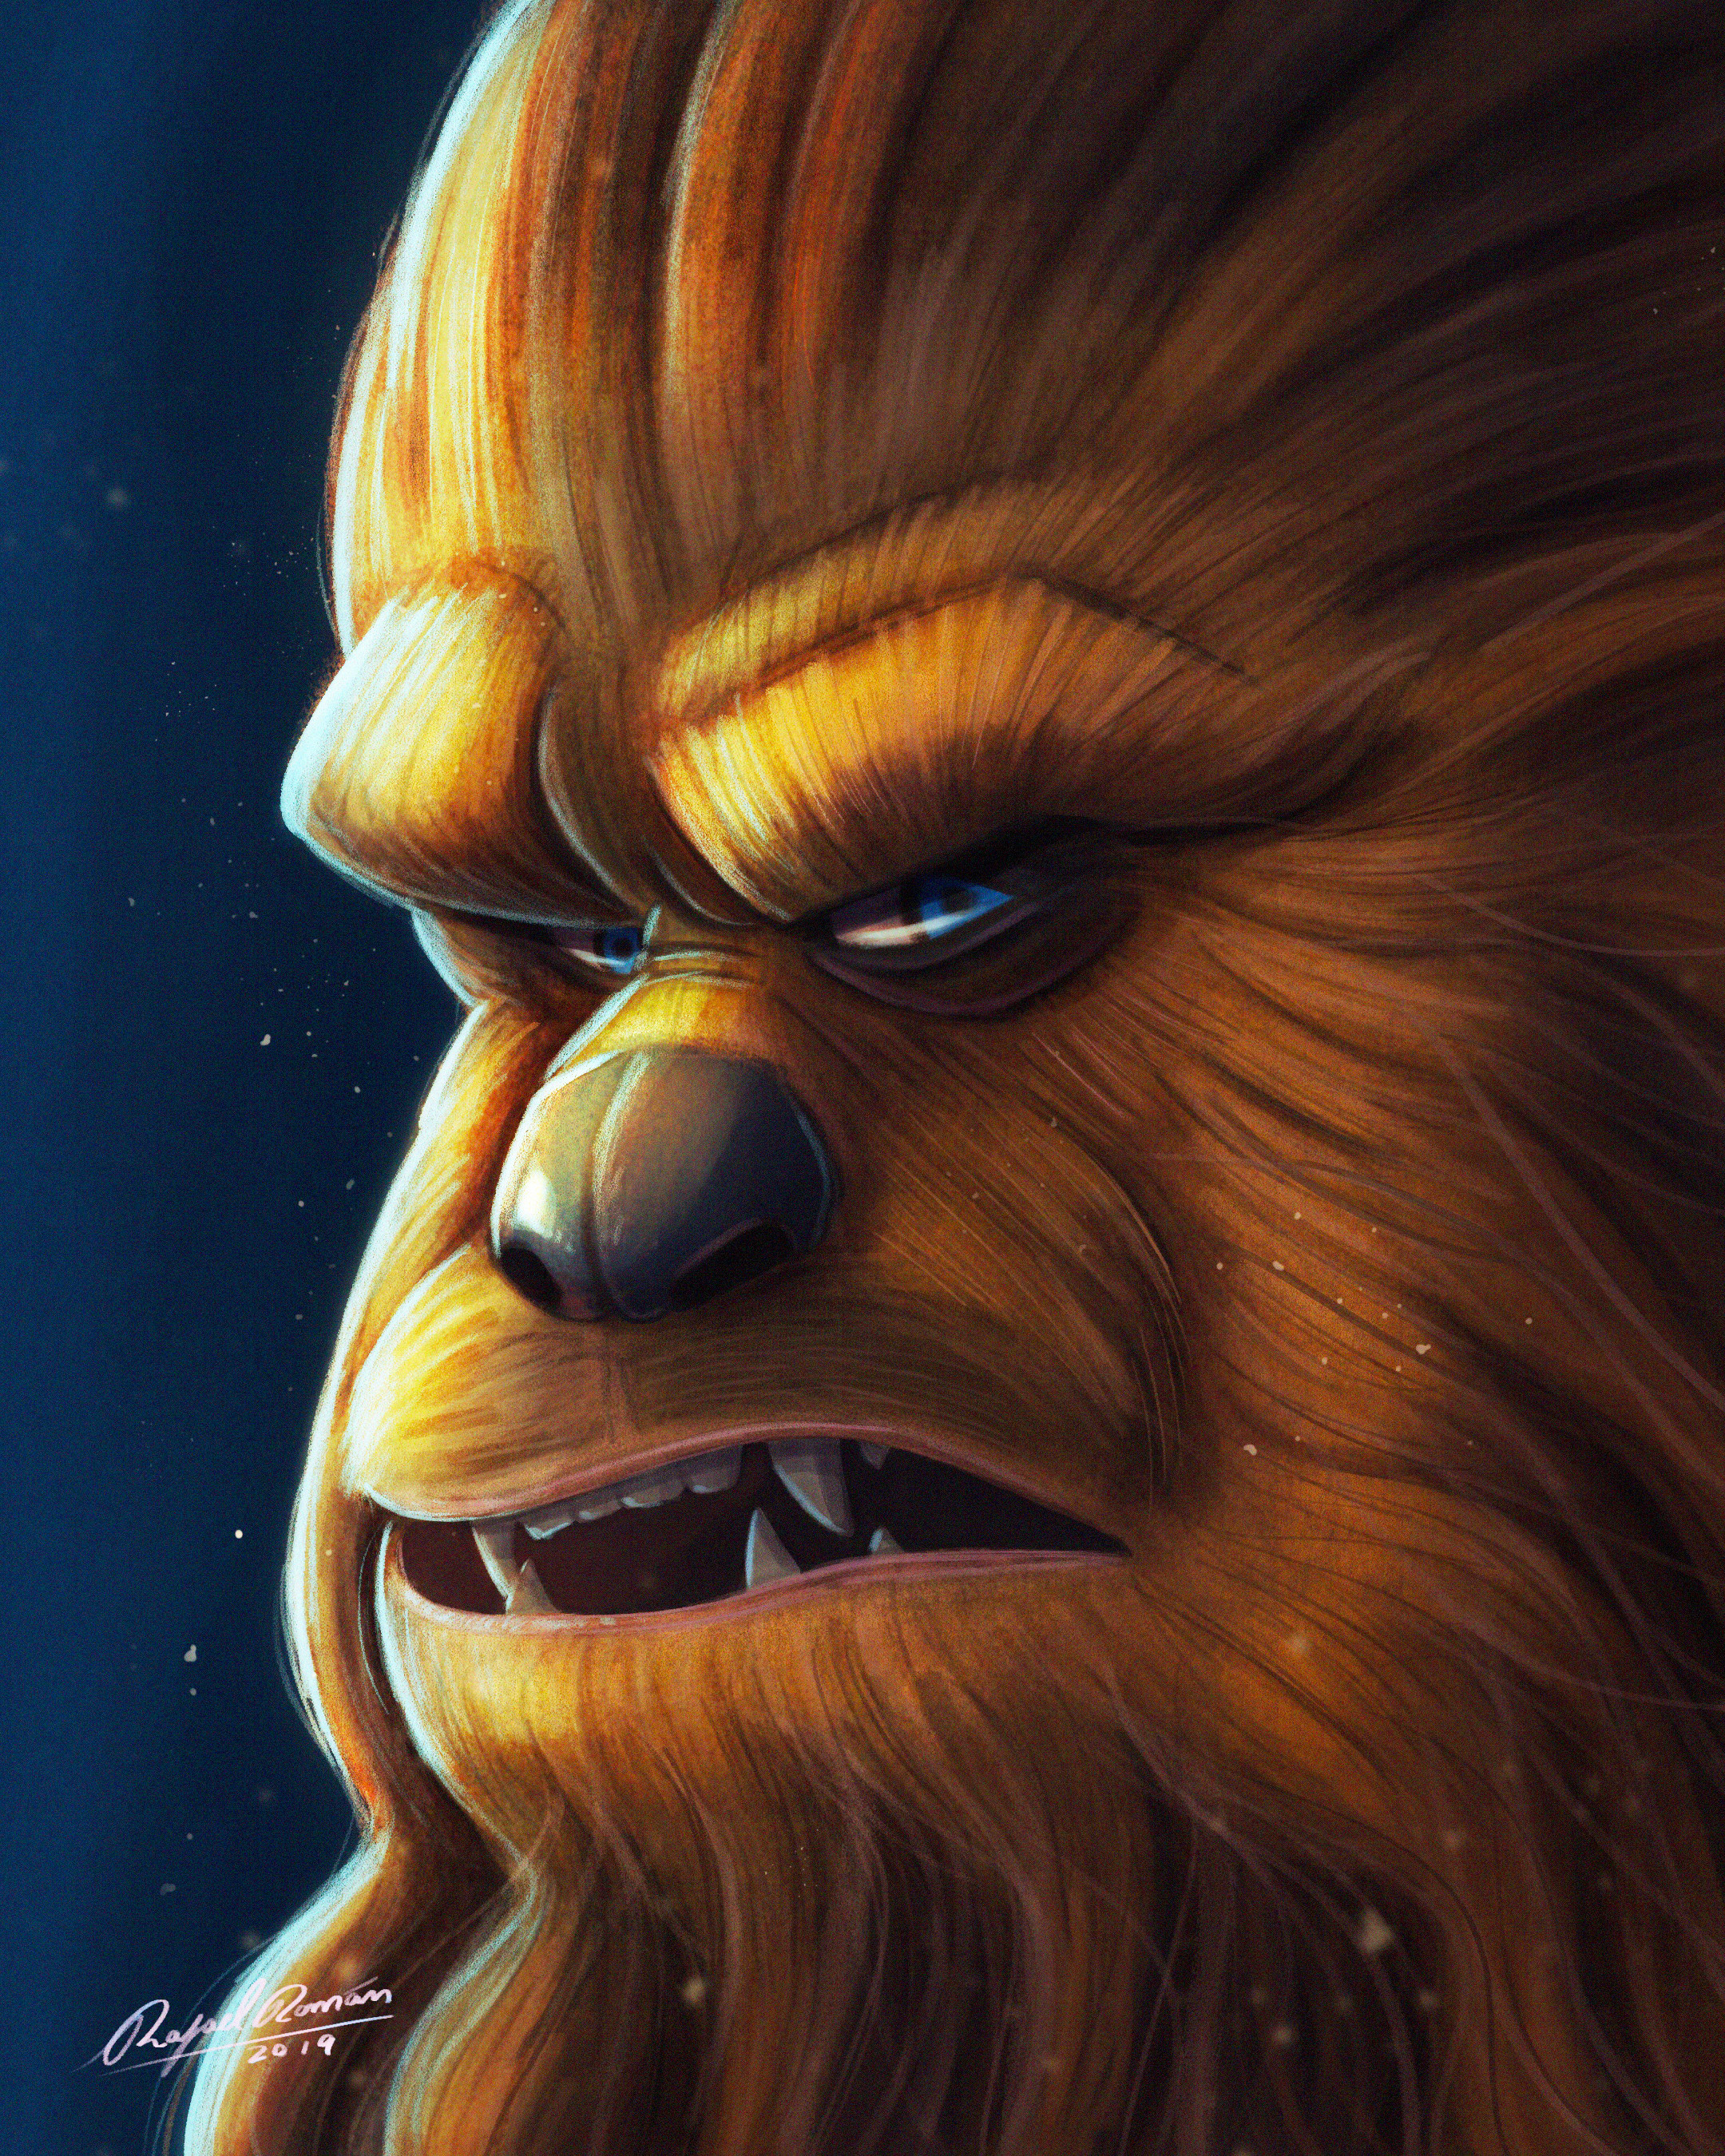 Day 13: Wookie